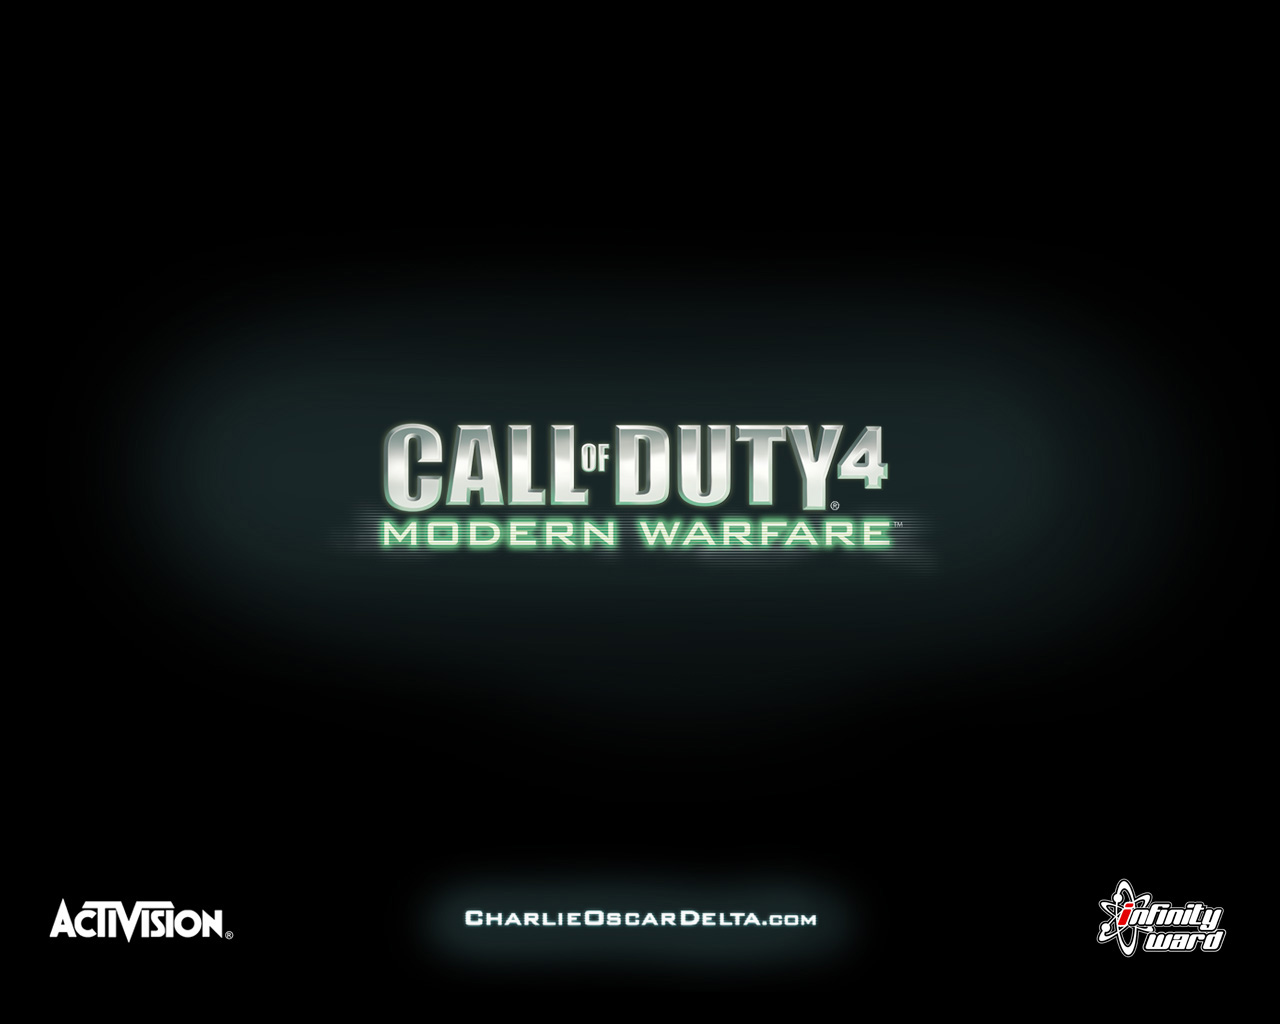 Cod4 Call Of Duty 4 Mobile Theme